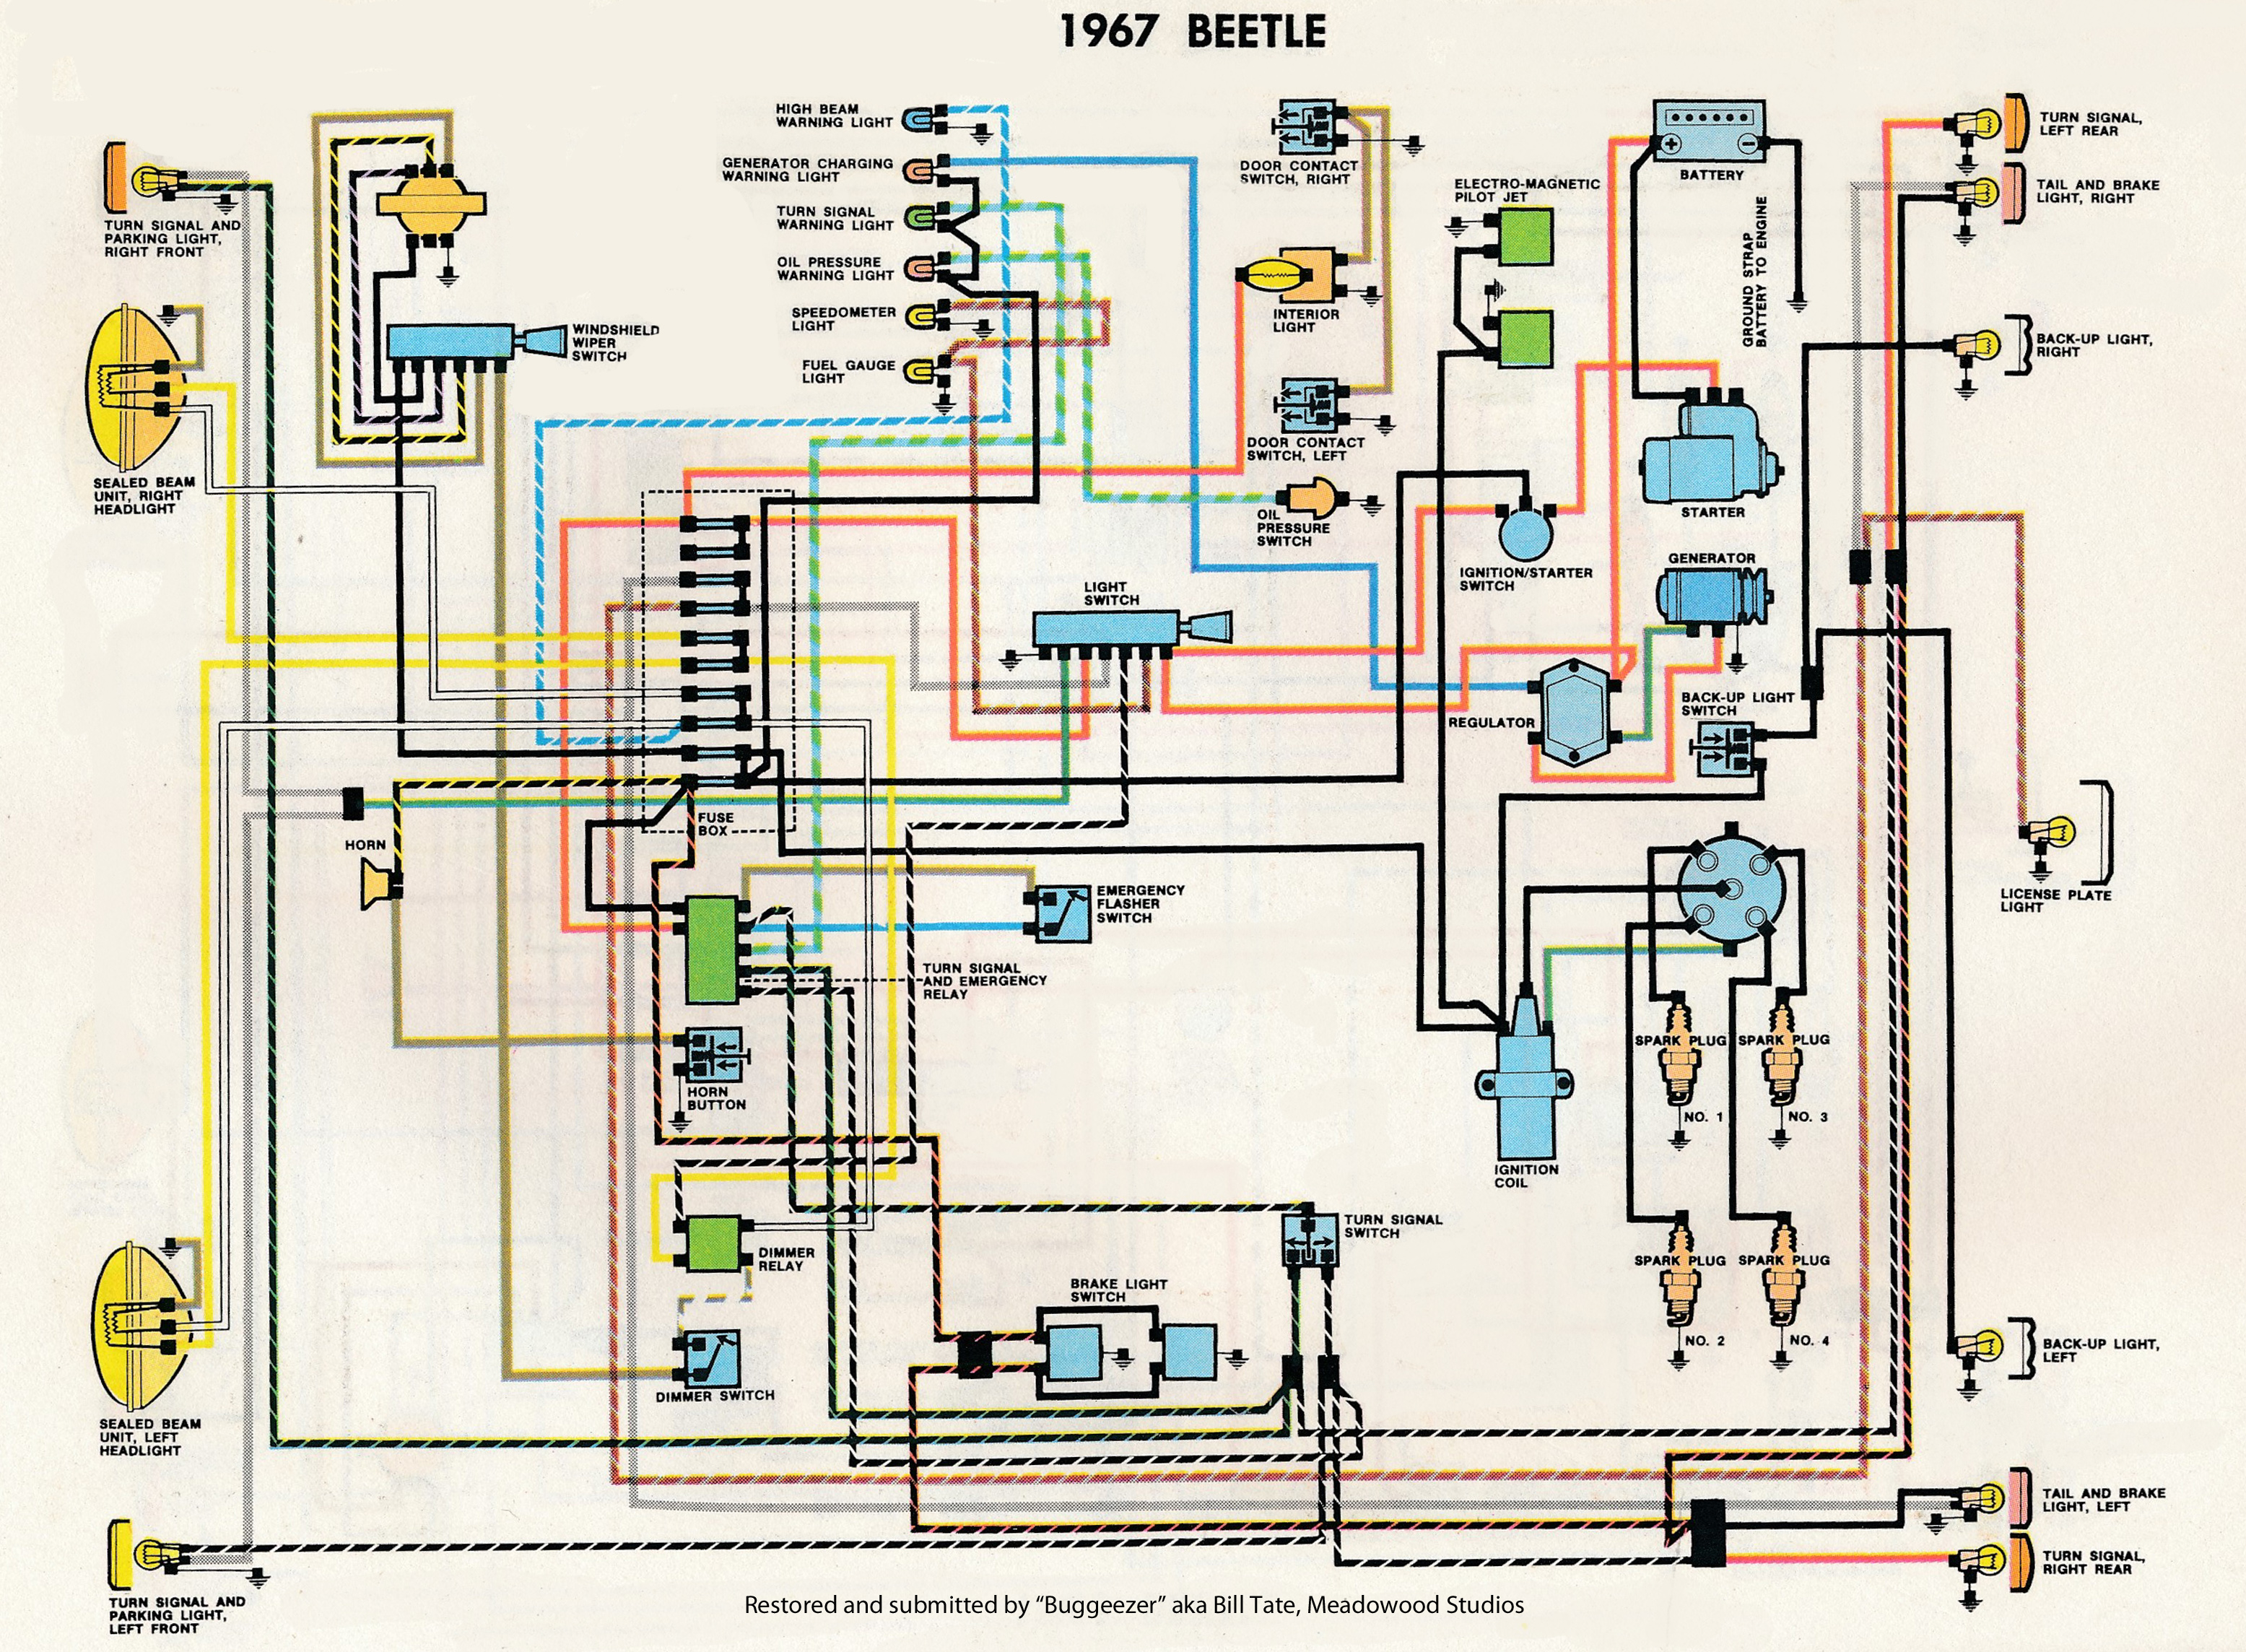 Wiring Diagram For 1967 Vw Beetle : Vw motor wiring diagram get free image about